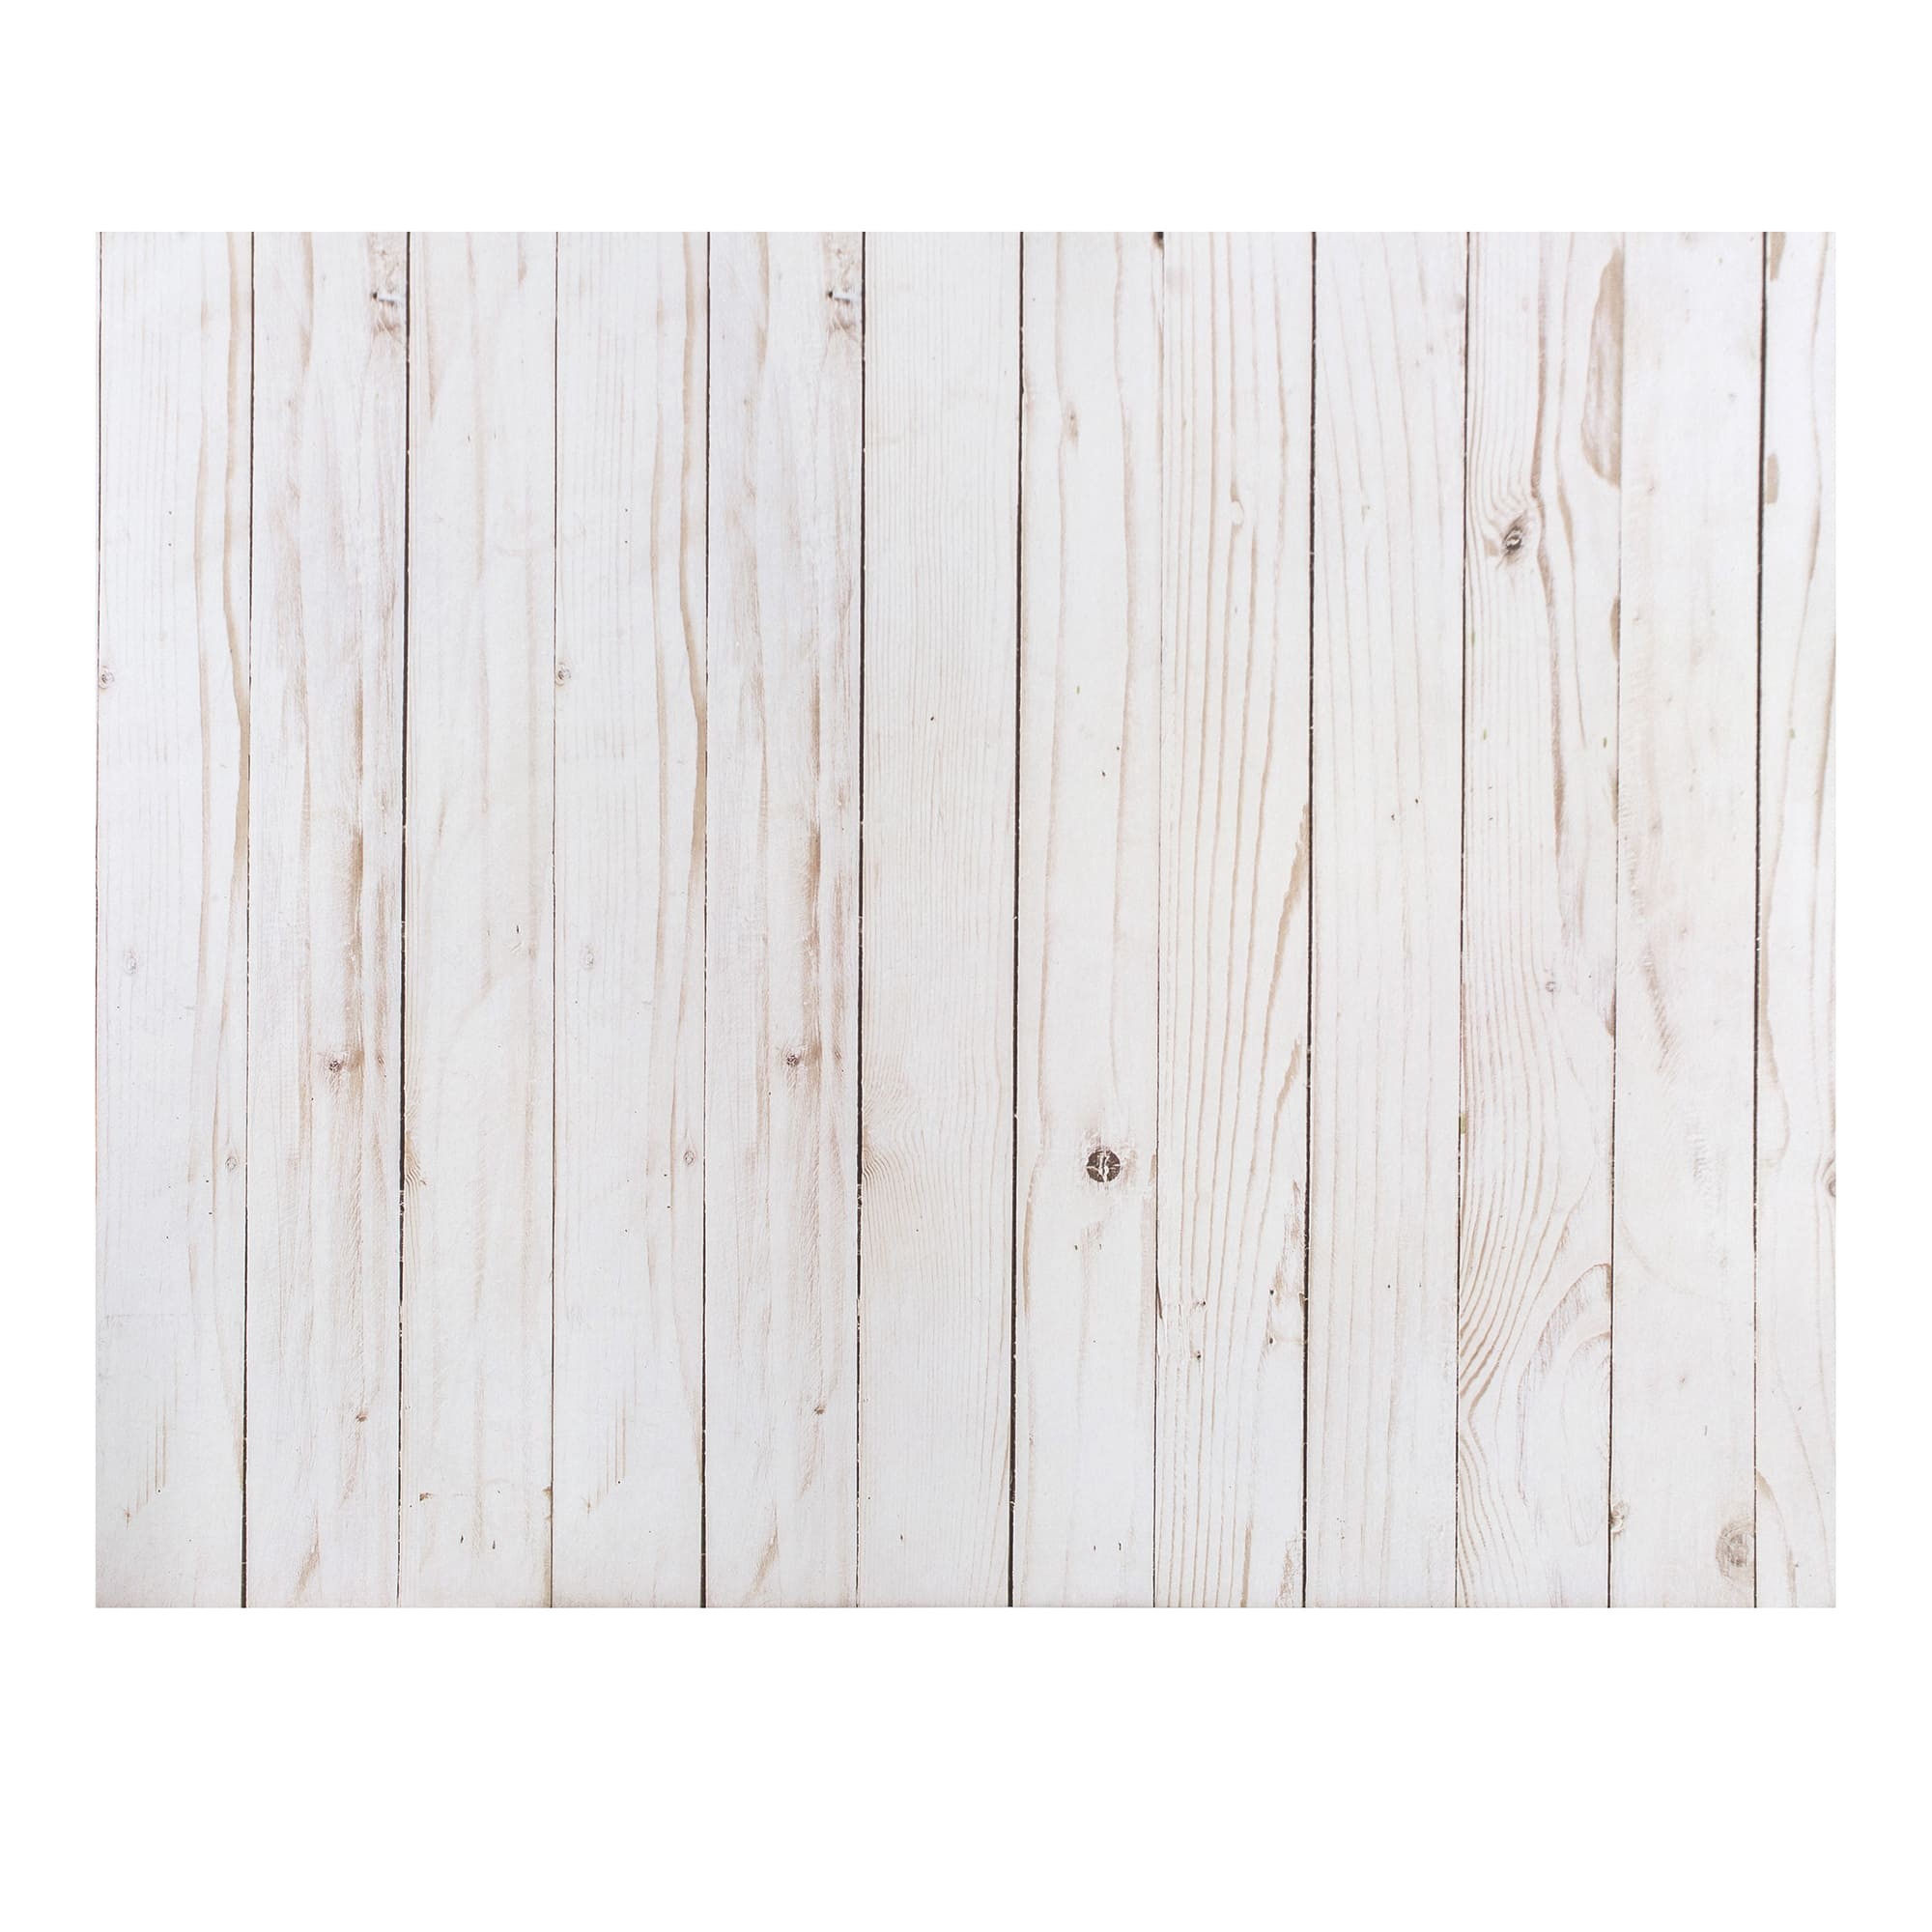 american crafts patterned poster board wood grain